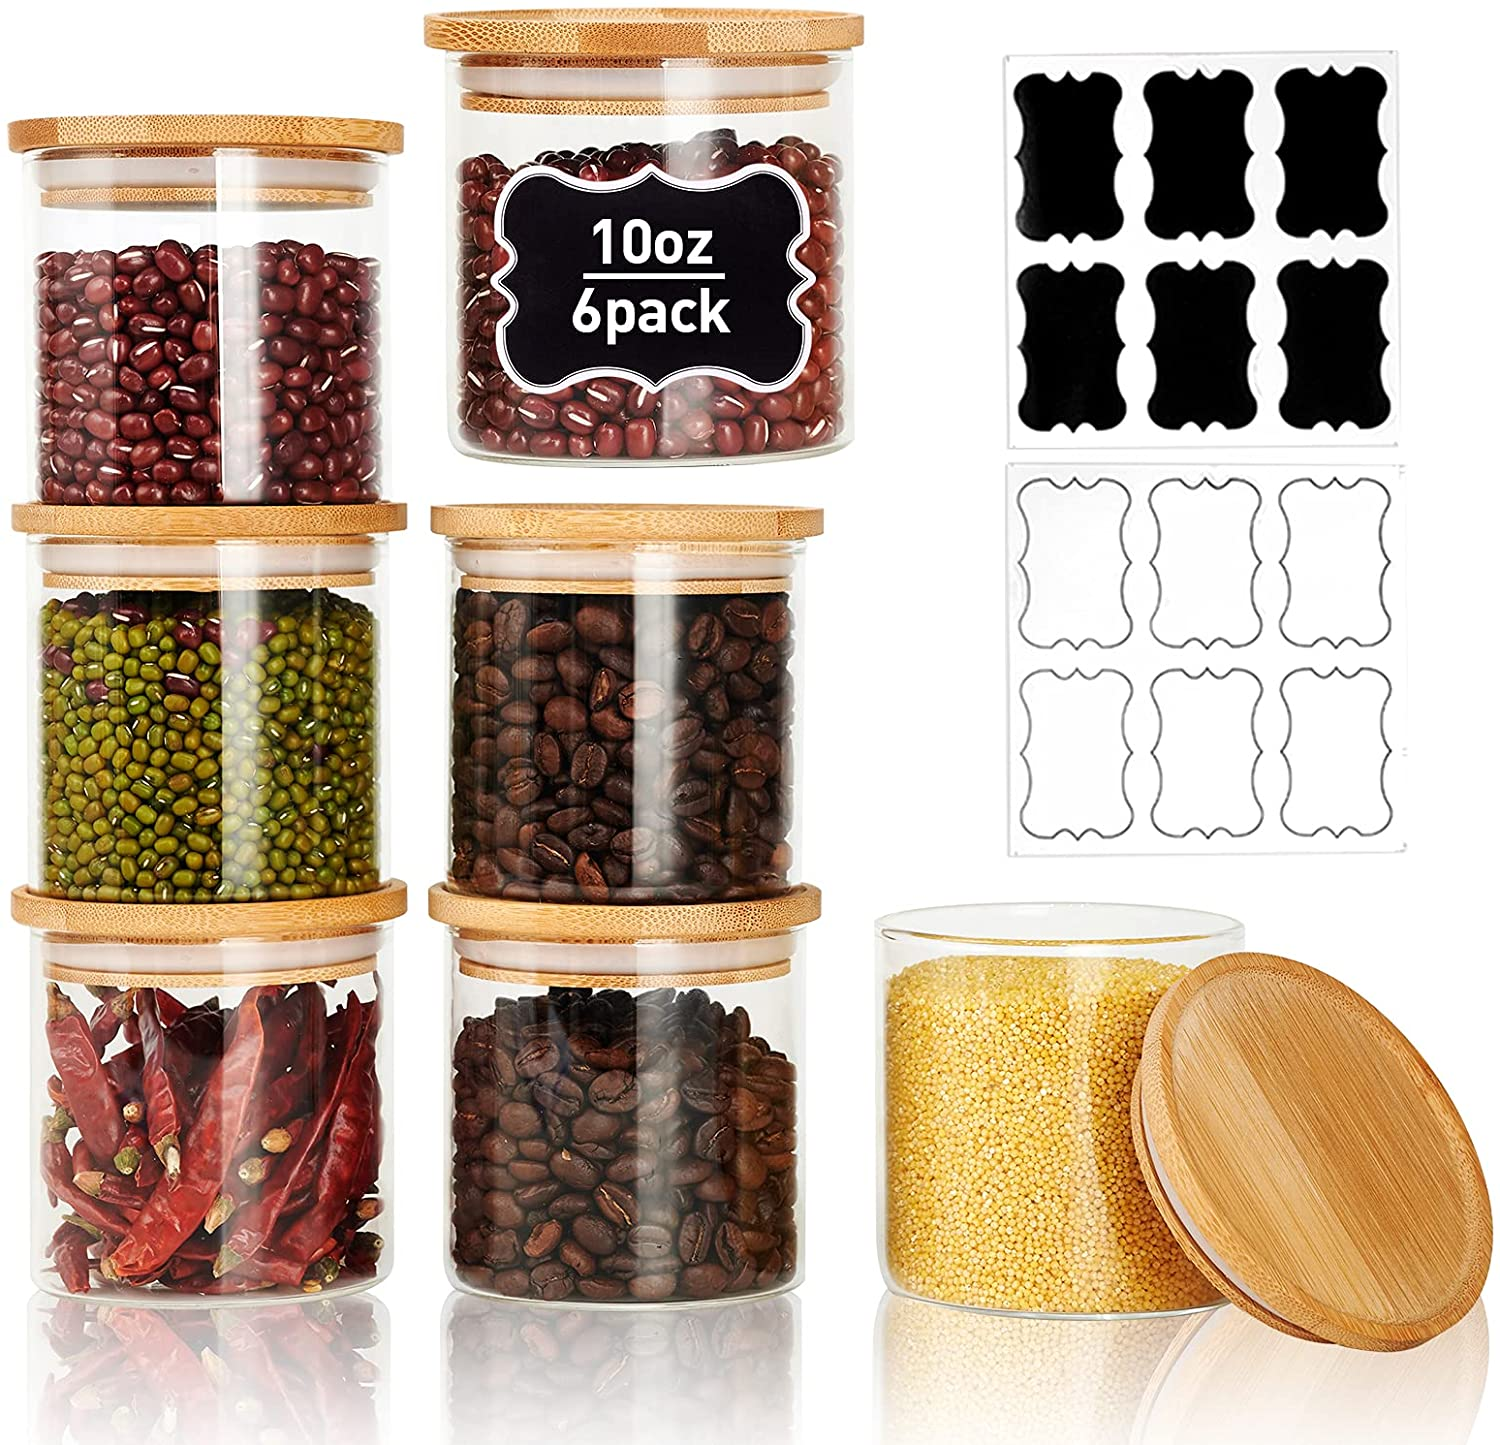 LIFESENCE Glass Jars with Lids 10 oz Spice Jar Small Glass Canisters Set of 6 with Bamboo Airtight Lids and Labels Small Containers for Kitchen Sugar Salt Tea Herbs Coffee and More